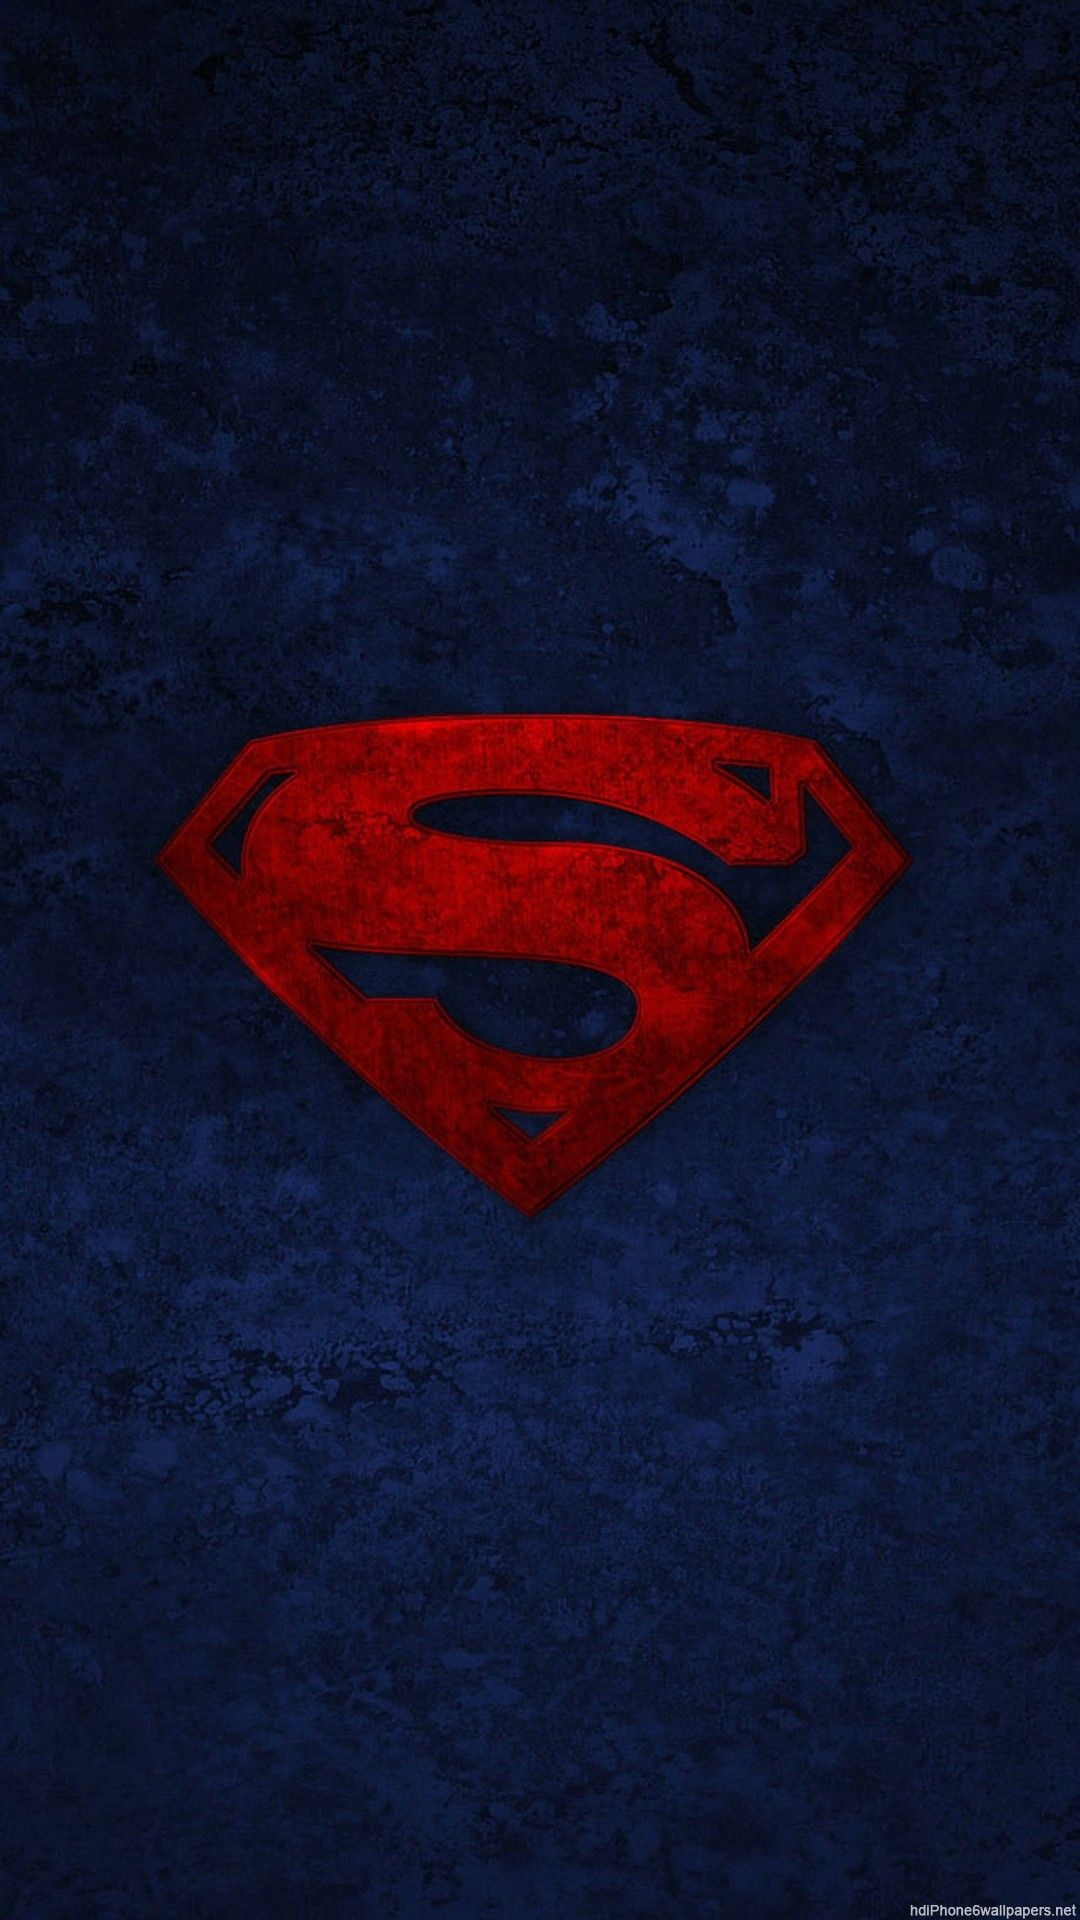 1080x1920 1080x1920 Superman Logo Iphone 6 Wallpapers Hd 6 Plus